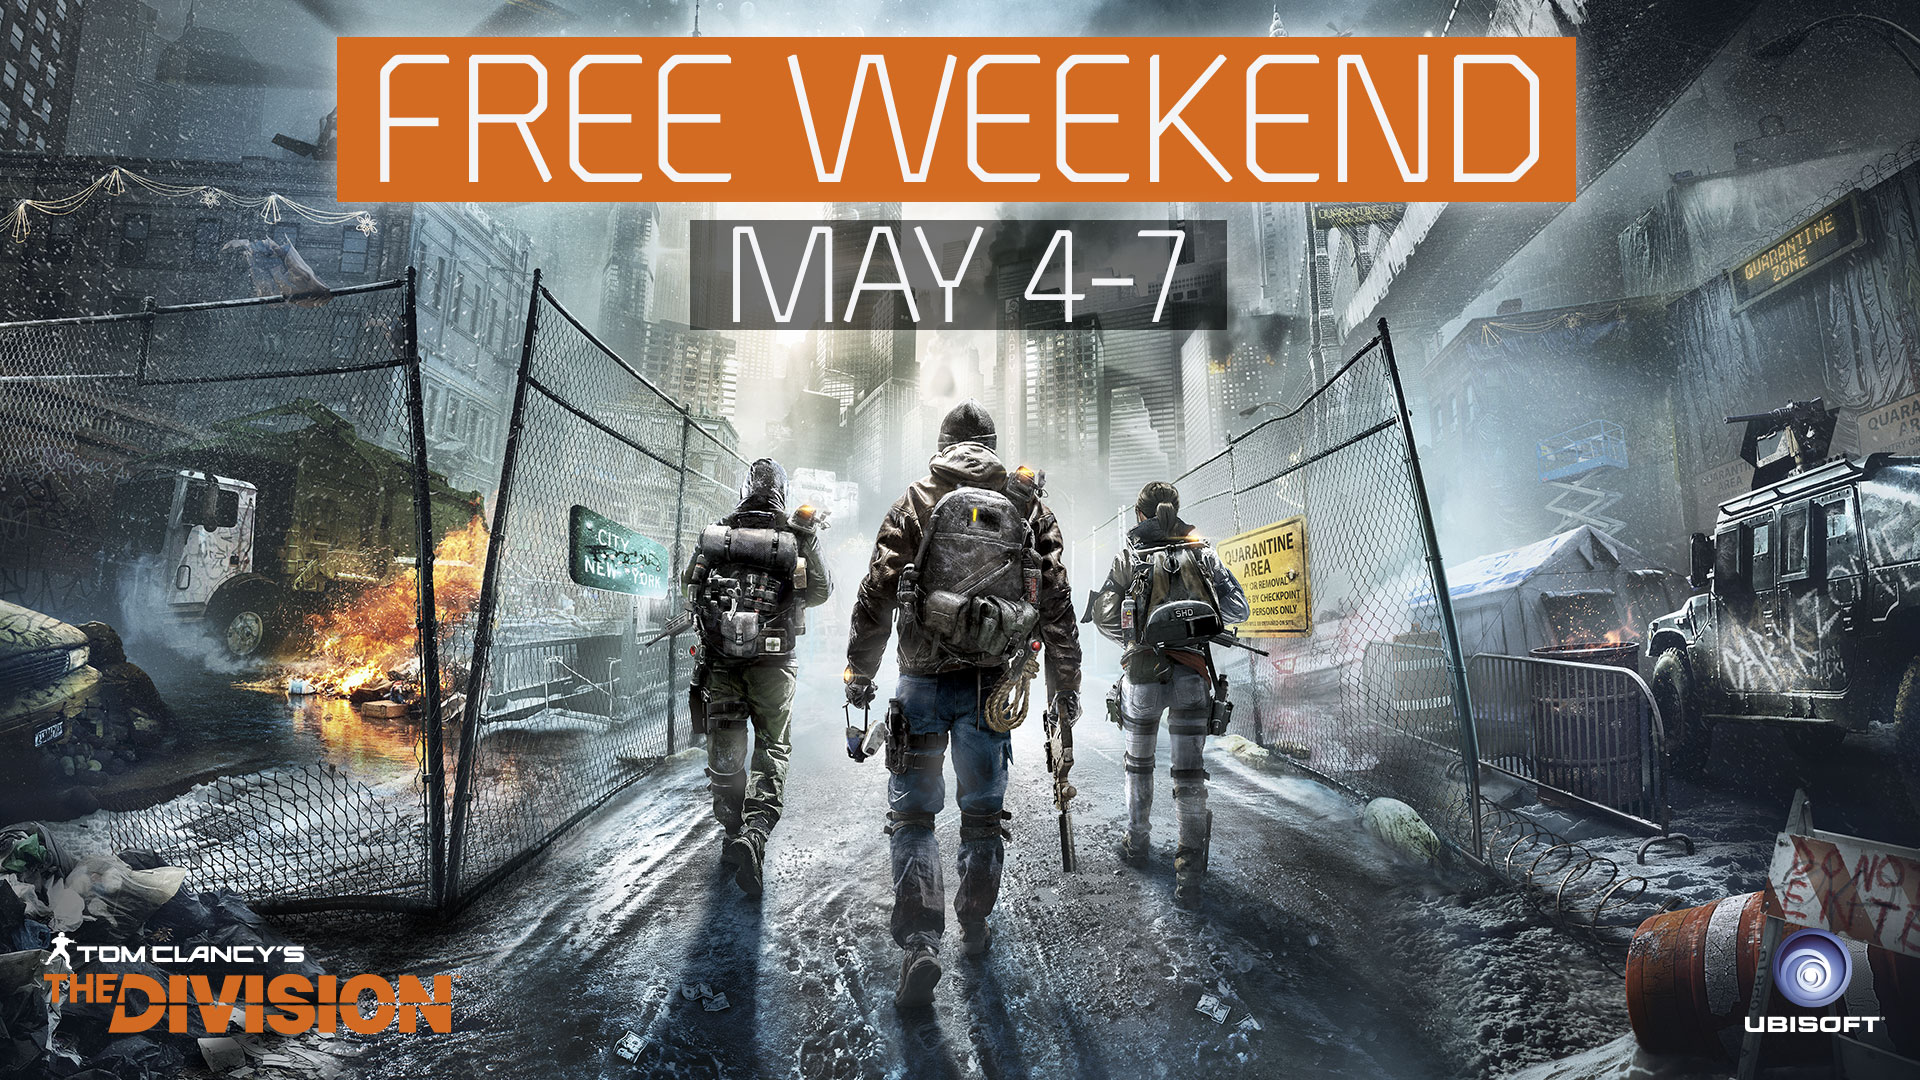 2017-05-04 [News] Freeweekend - header